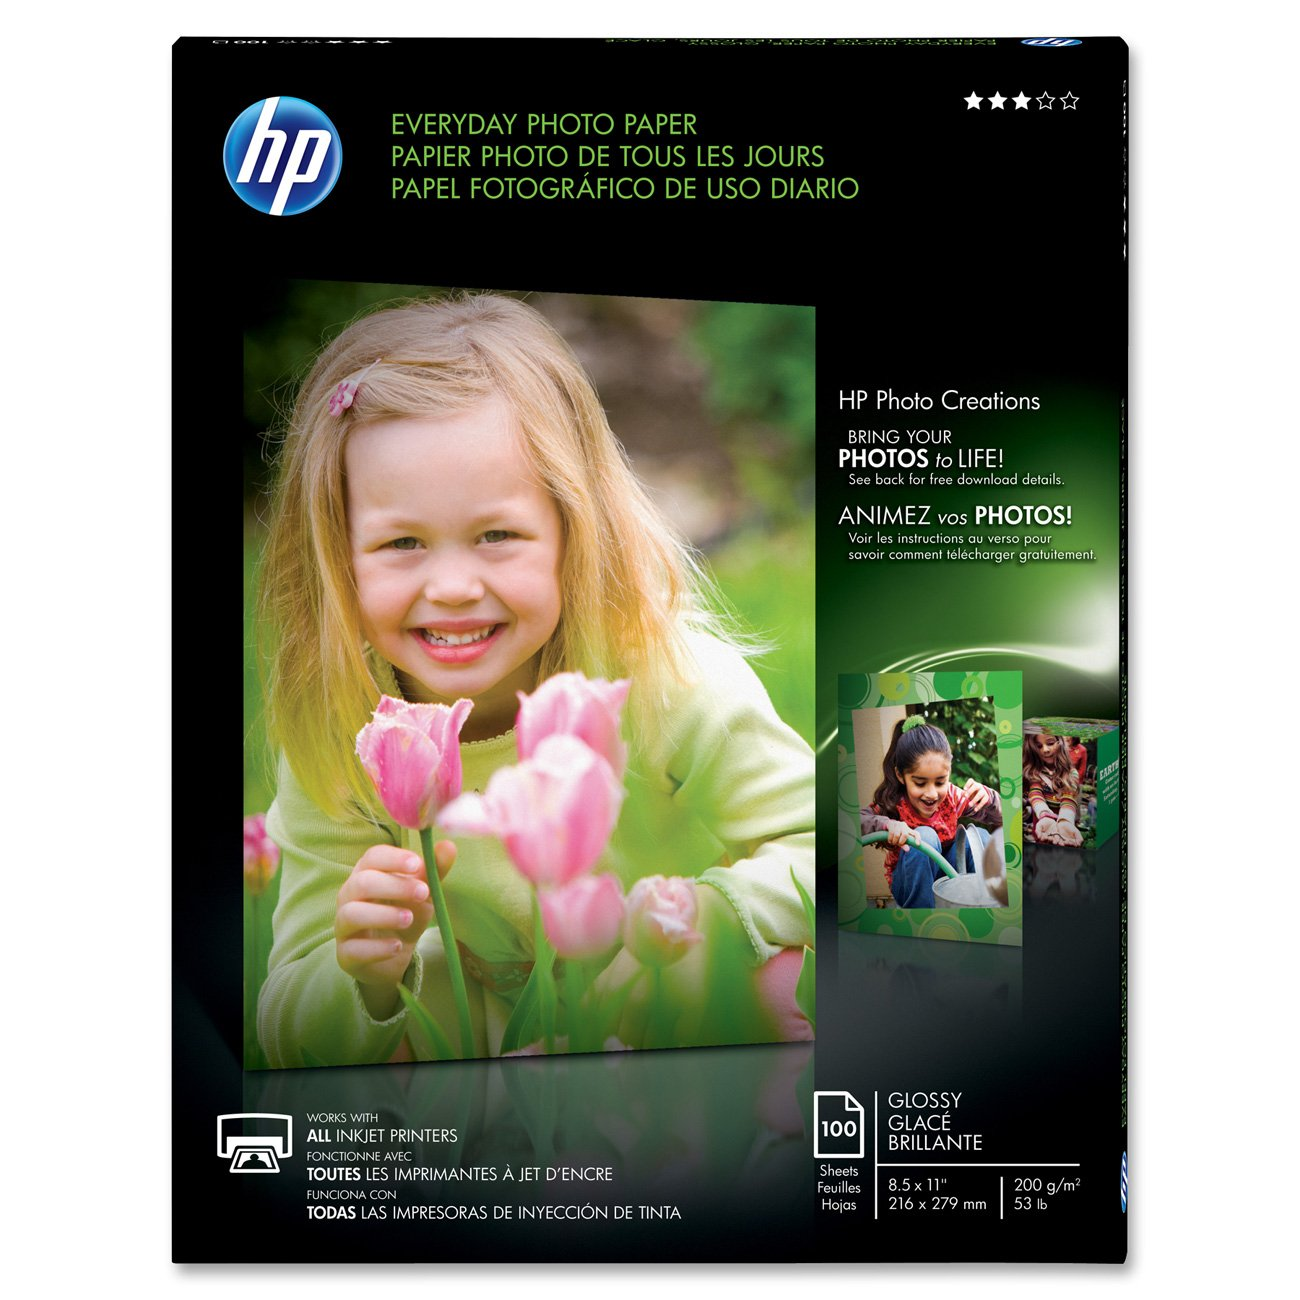 HP Q2509A Glossy Everyday Photo Paper, 8.5 x 11 inches (100 Sheets) by HP